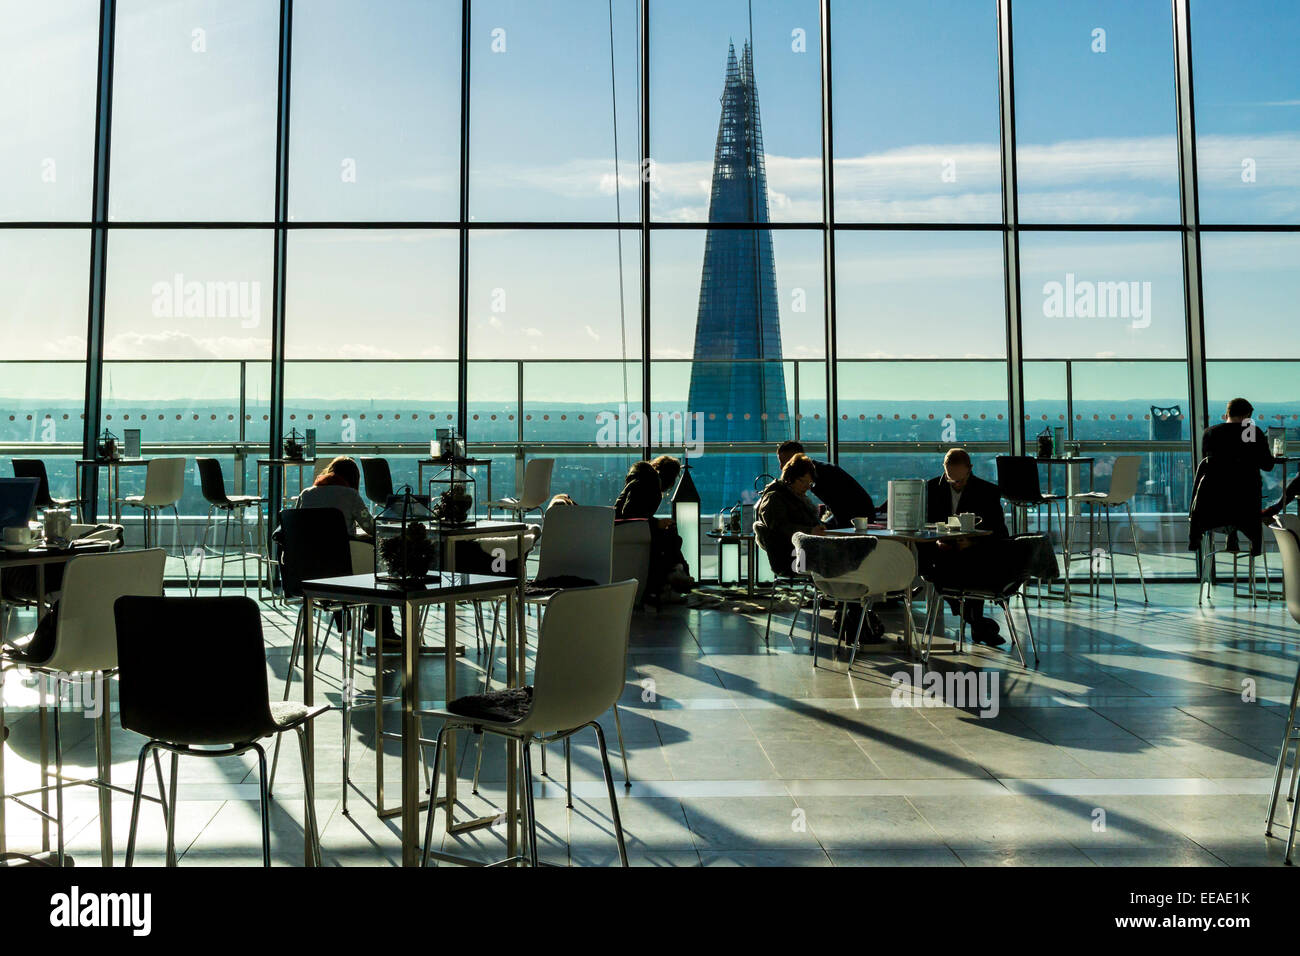 The Sky Garden is a public garden and viewing platform at the top of 20 Fenchurch Street, also known as the Walkie - Stock Image